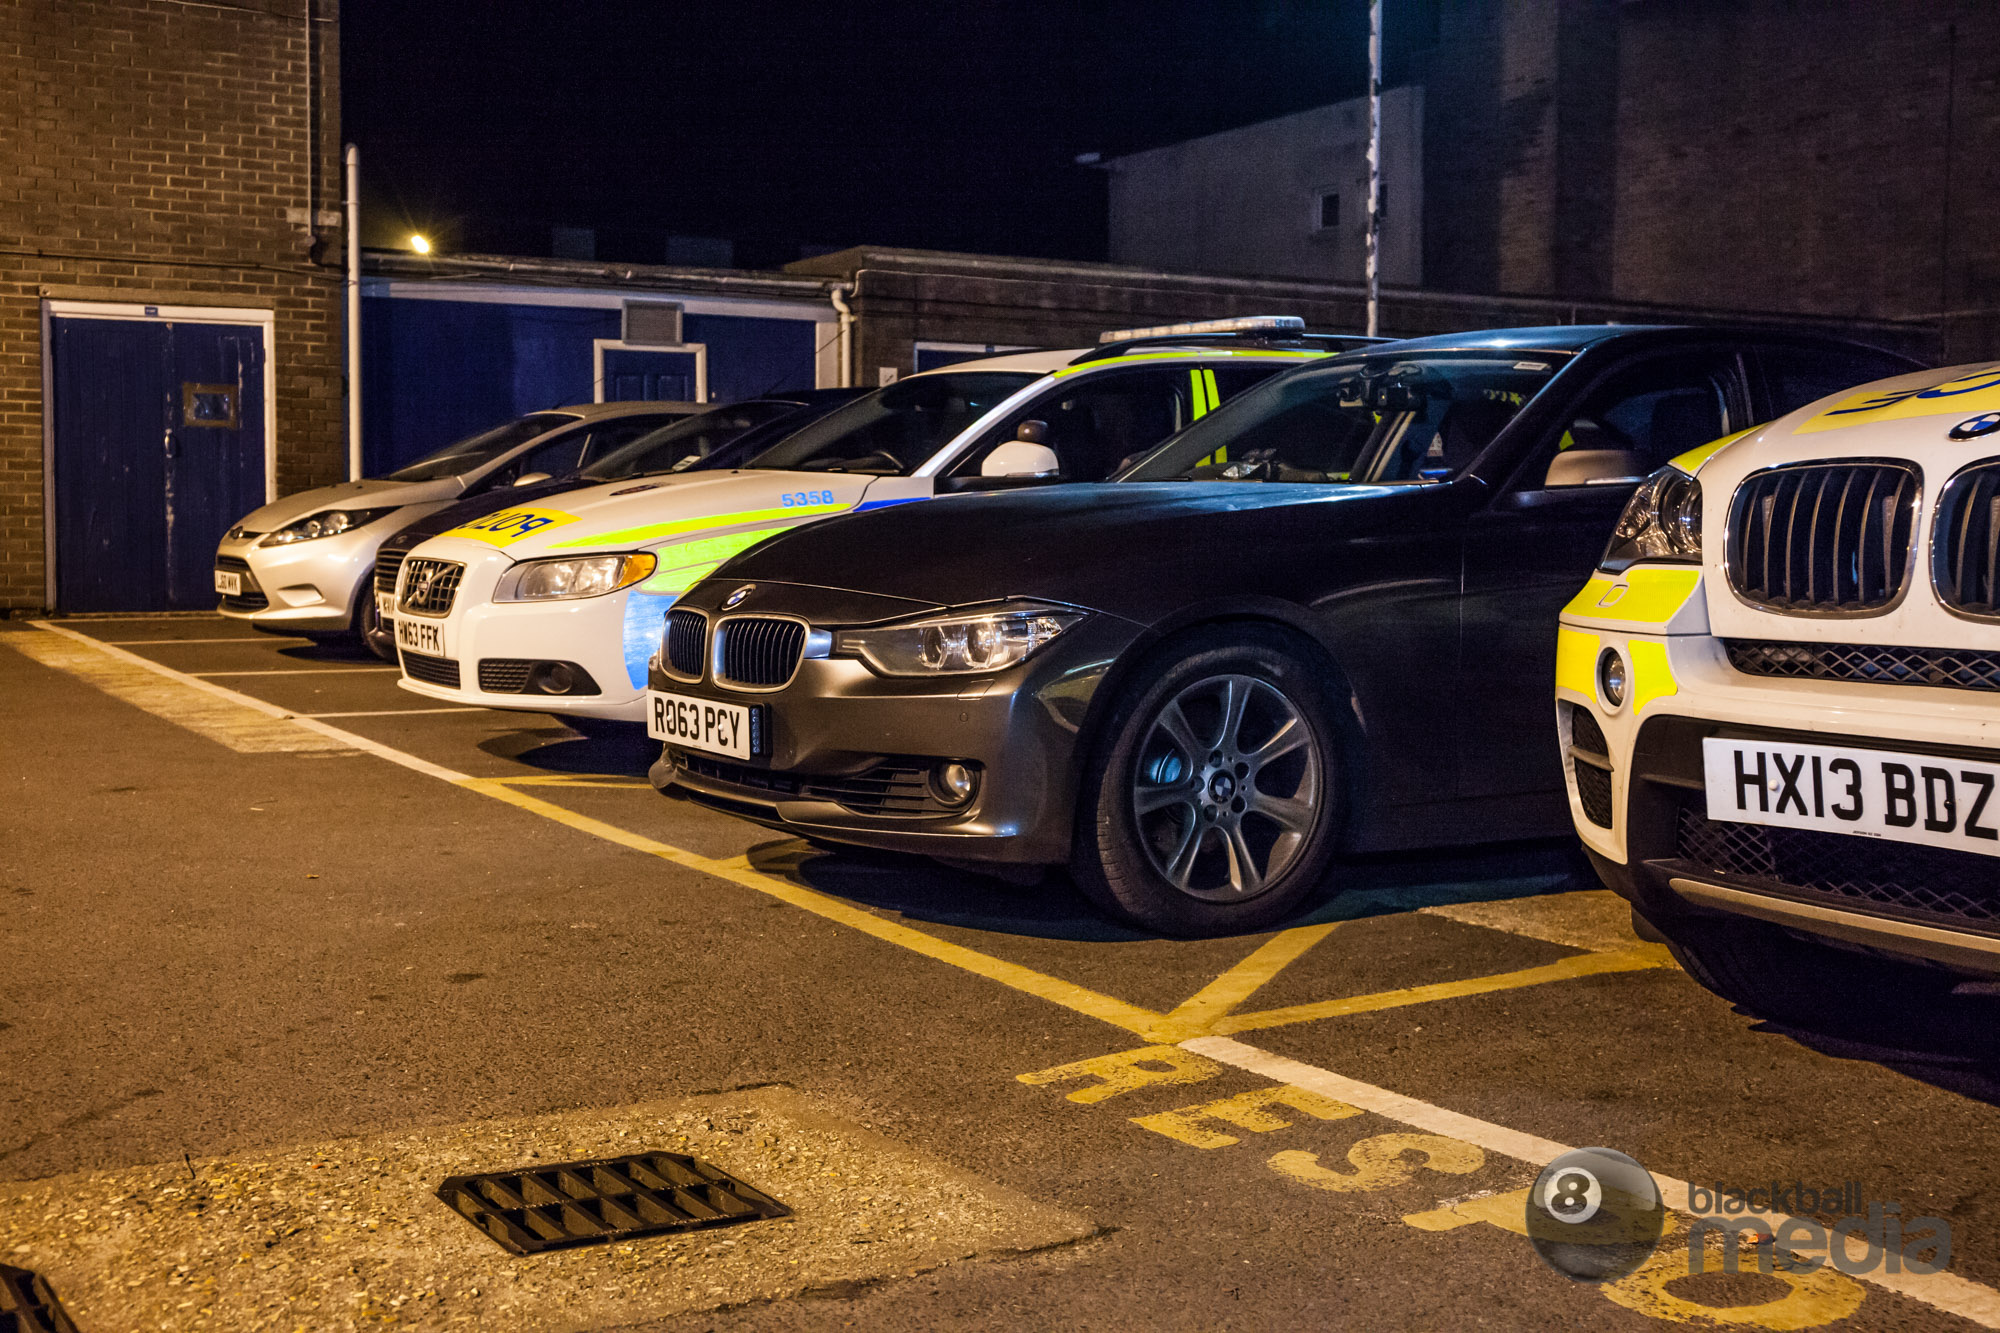 Spot One Of The Latest Unmarked Police Cars - SuperUnleaded.com